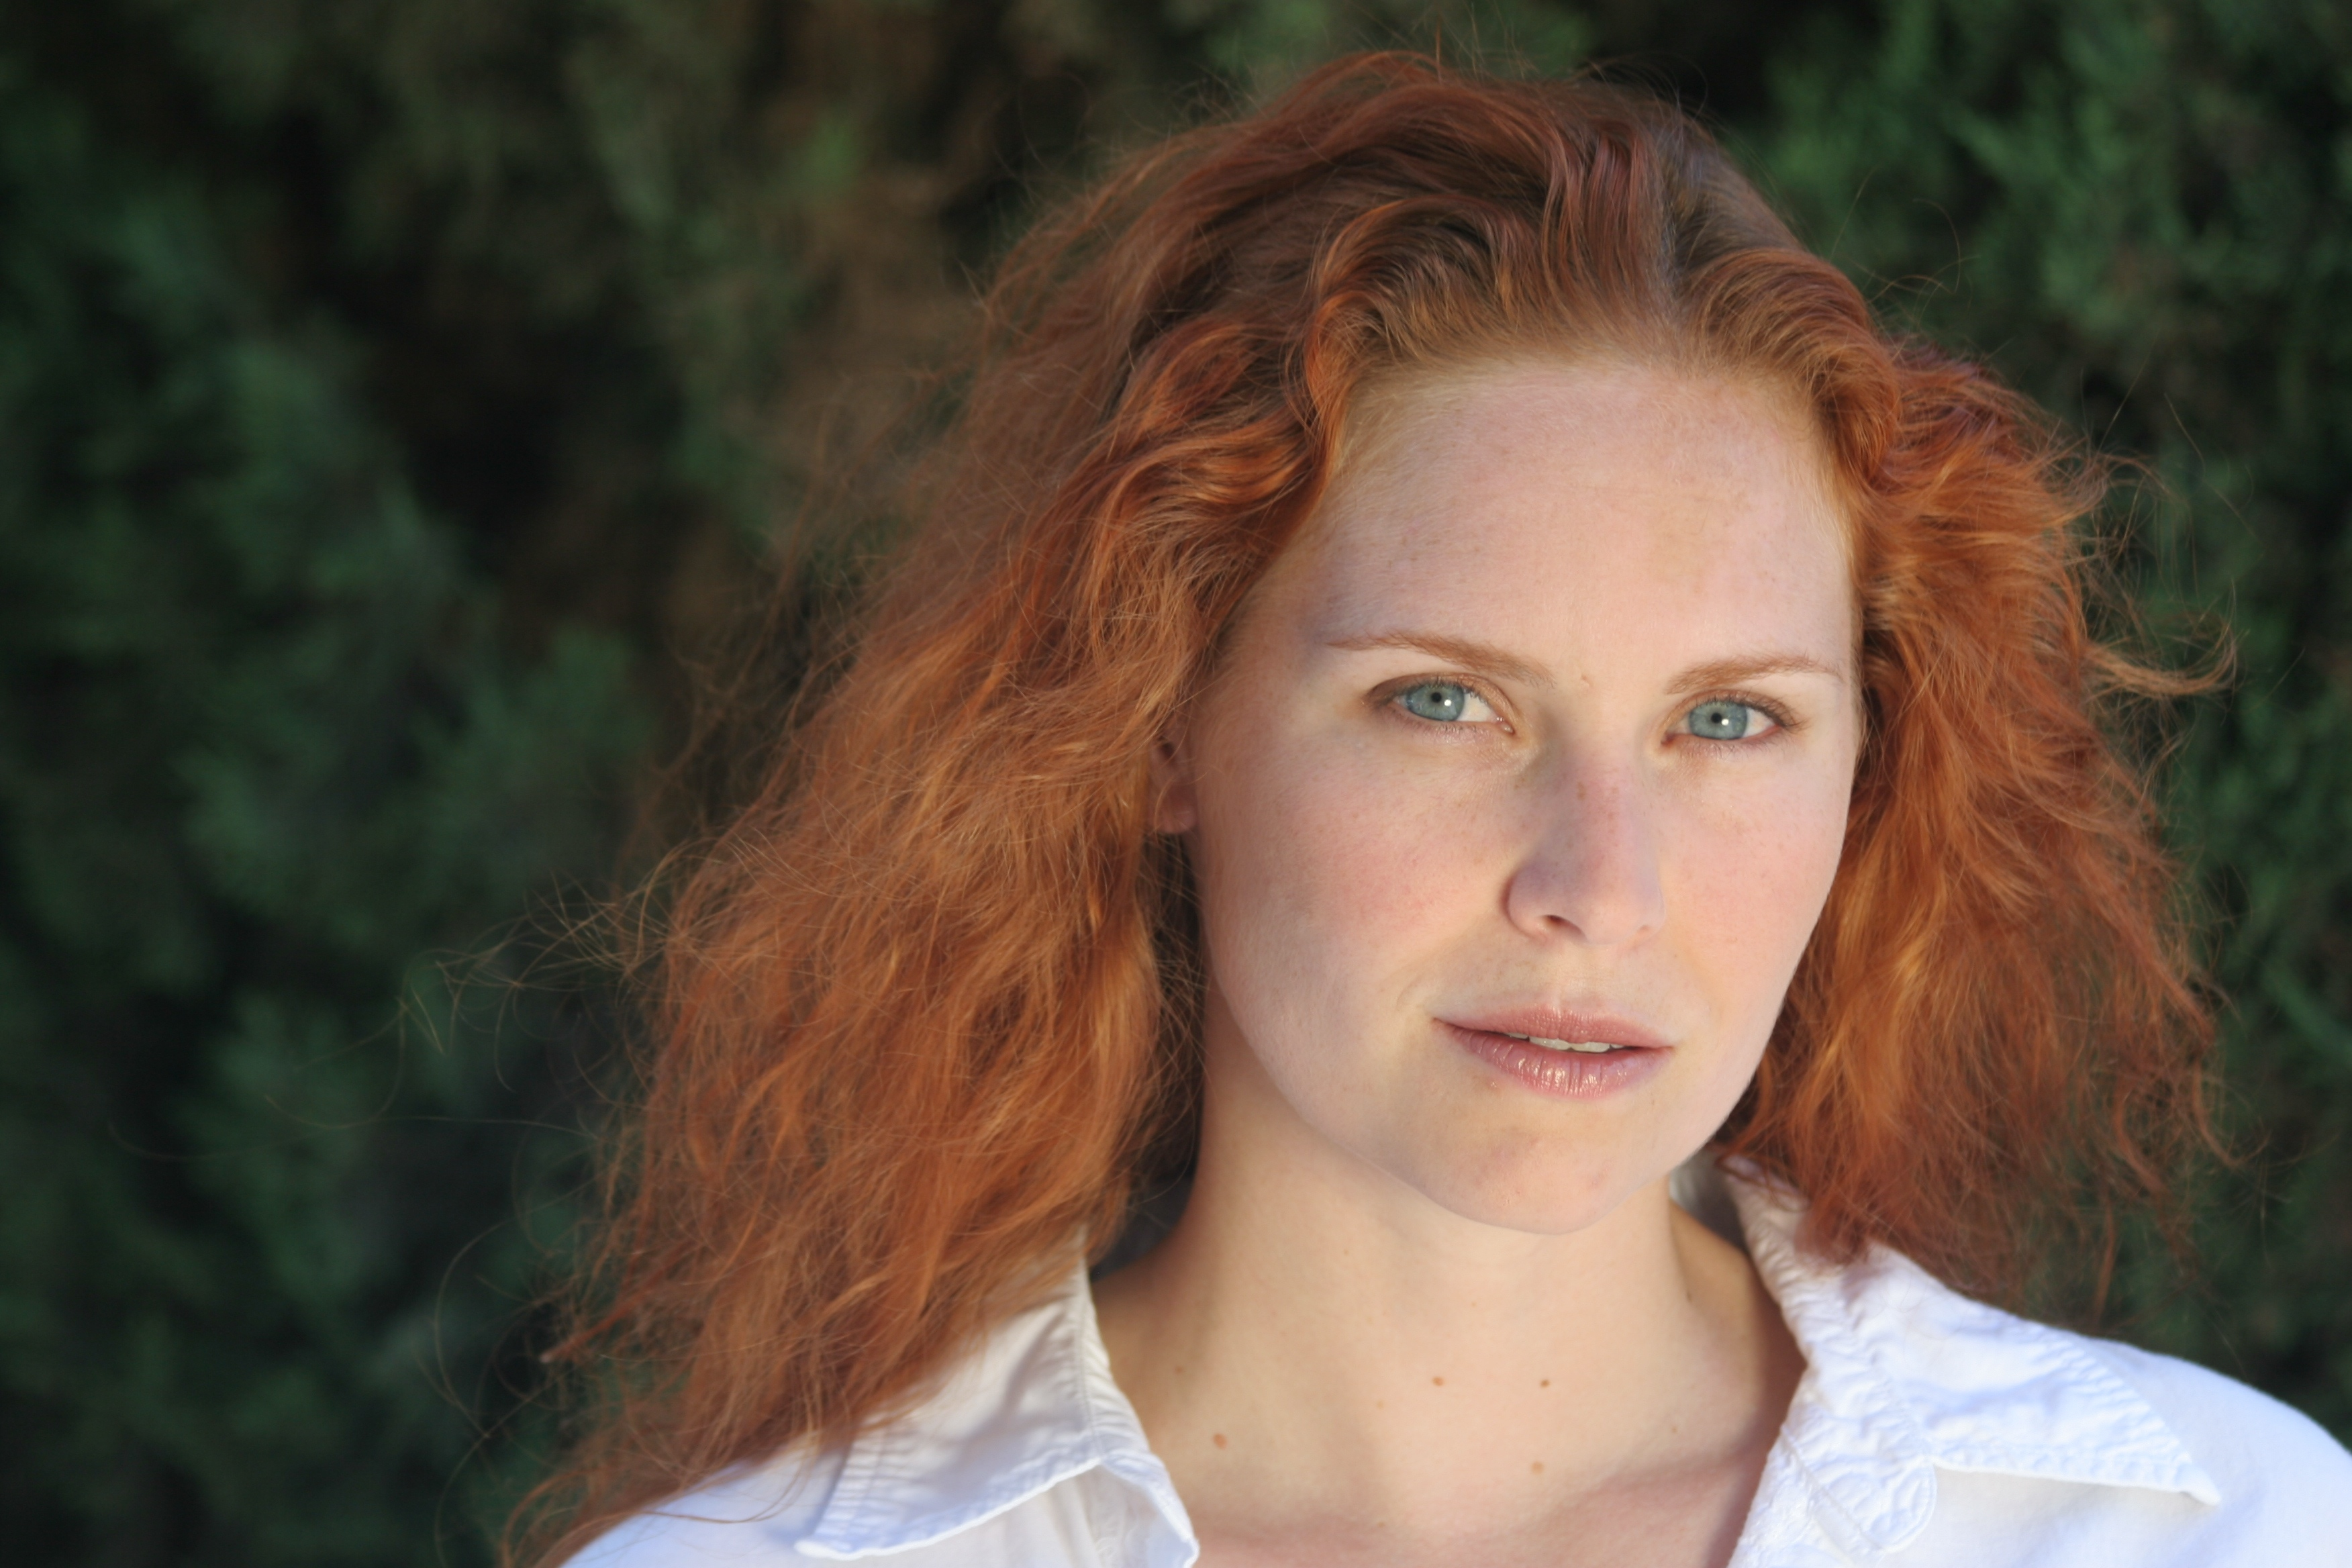 File:Woman redhead natural portrait.jpg - Wikimedia Commons